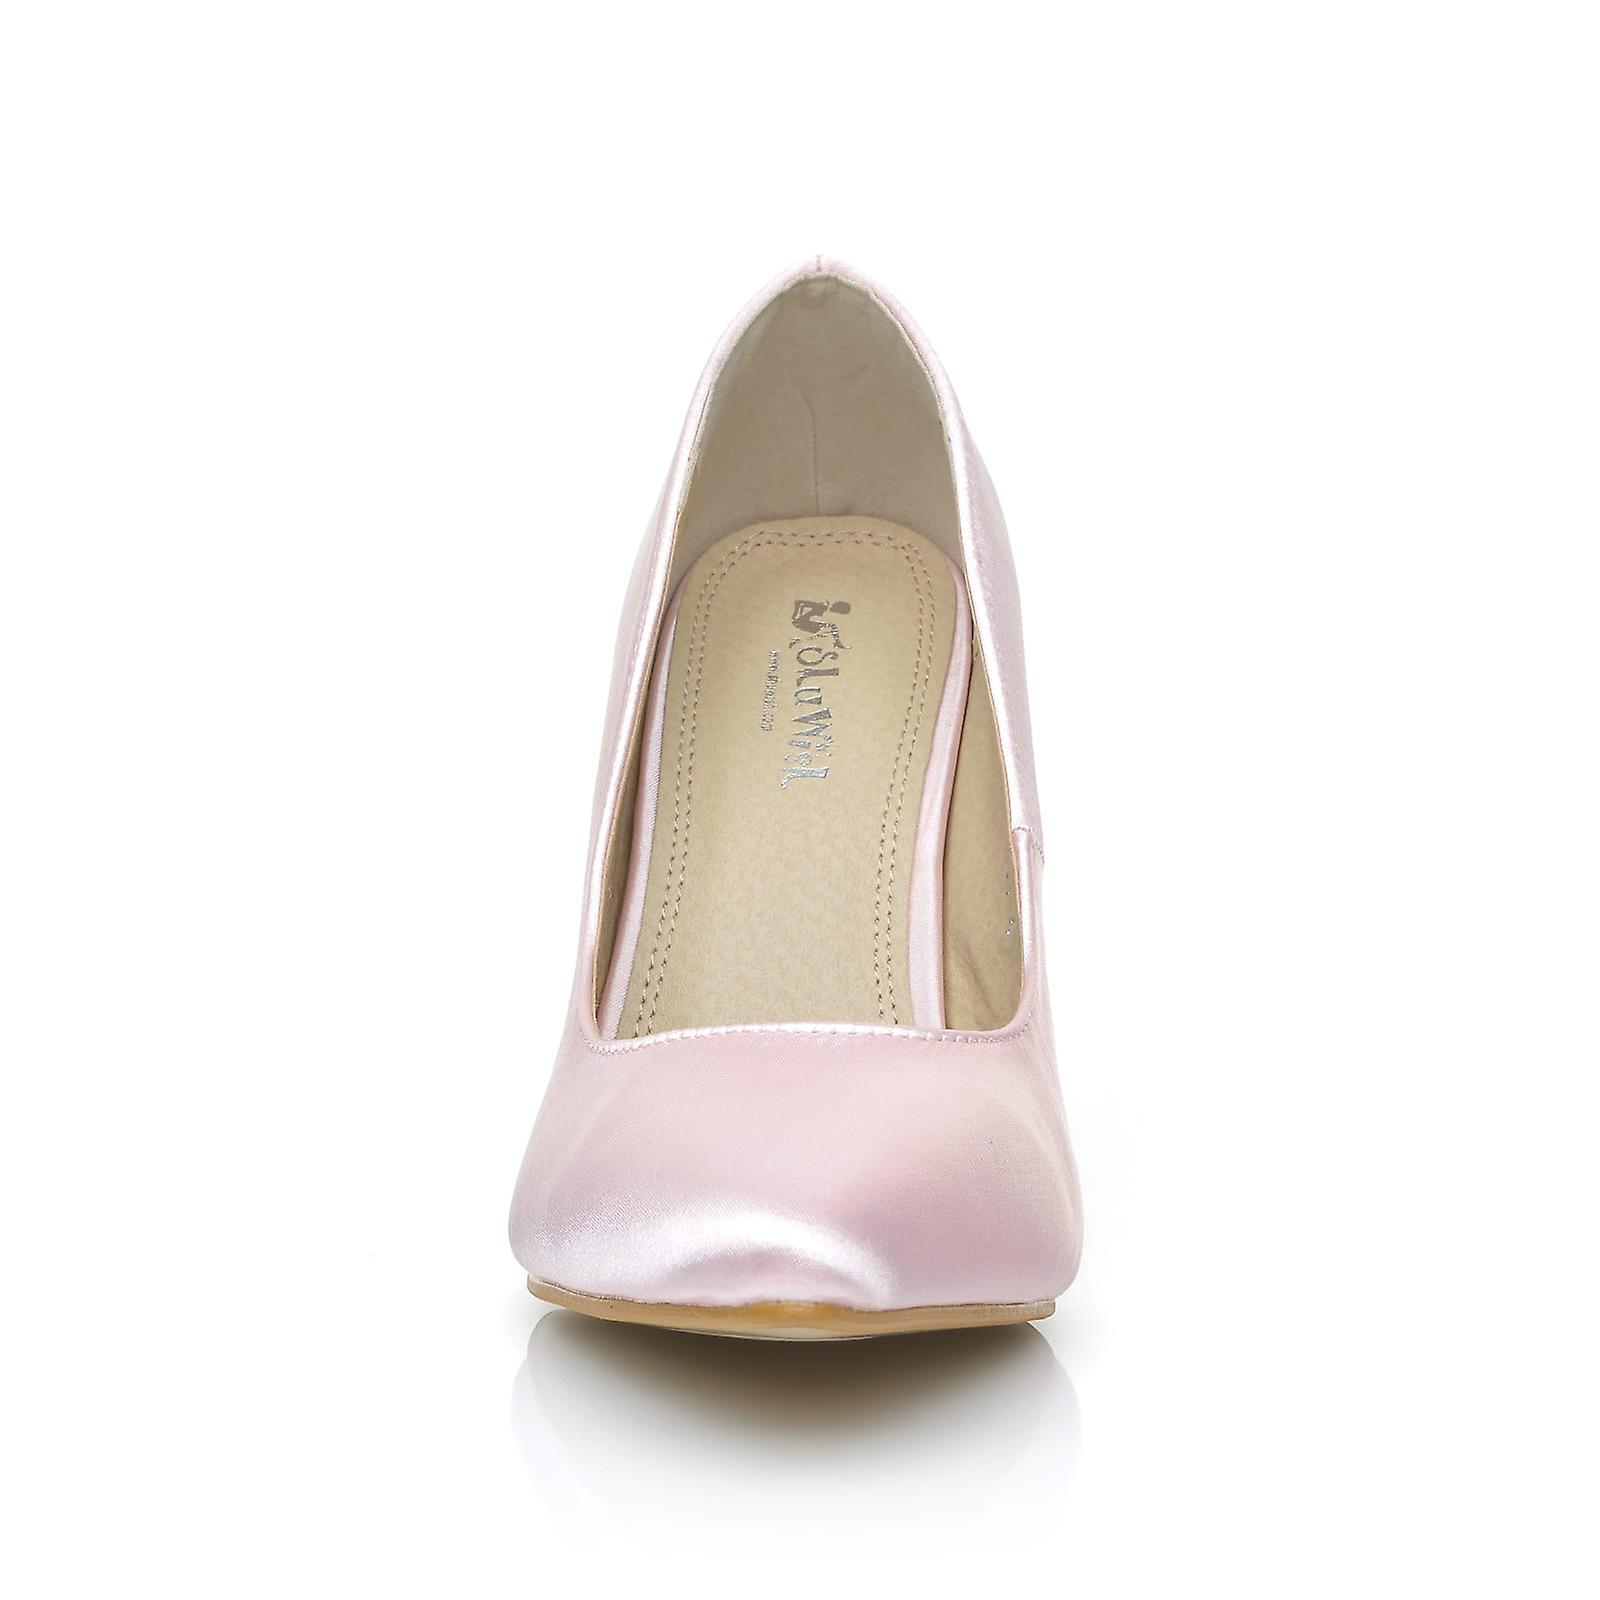 DARCY Baby Pink Satin Stiletto High High High Heel Pointed Bridal Court Shoes 3ef887